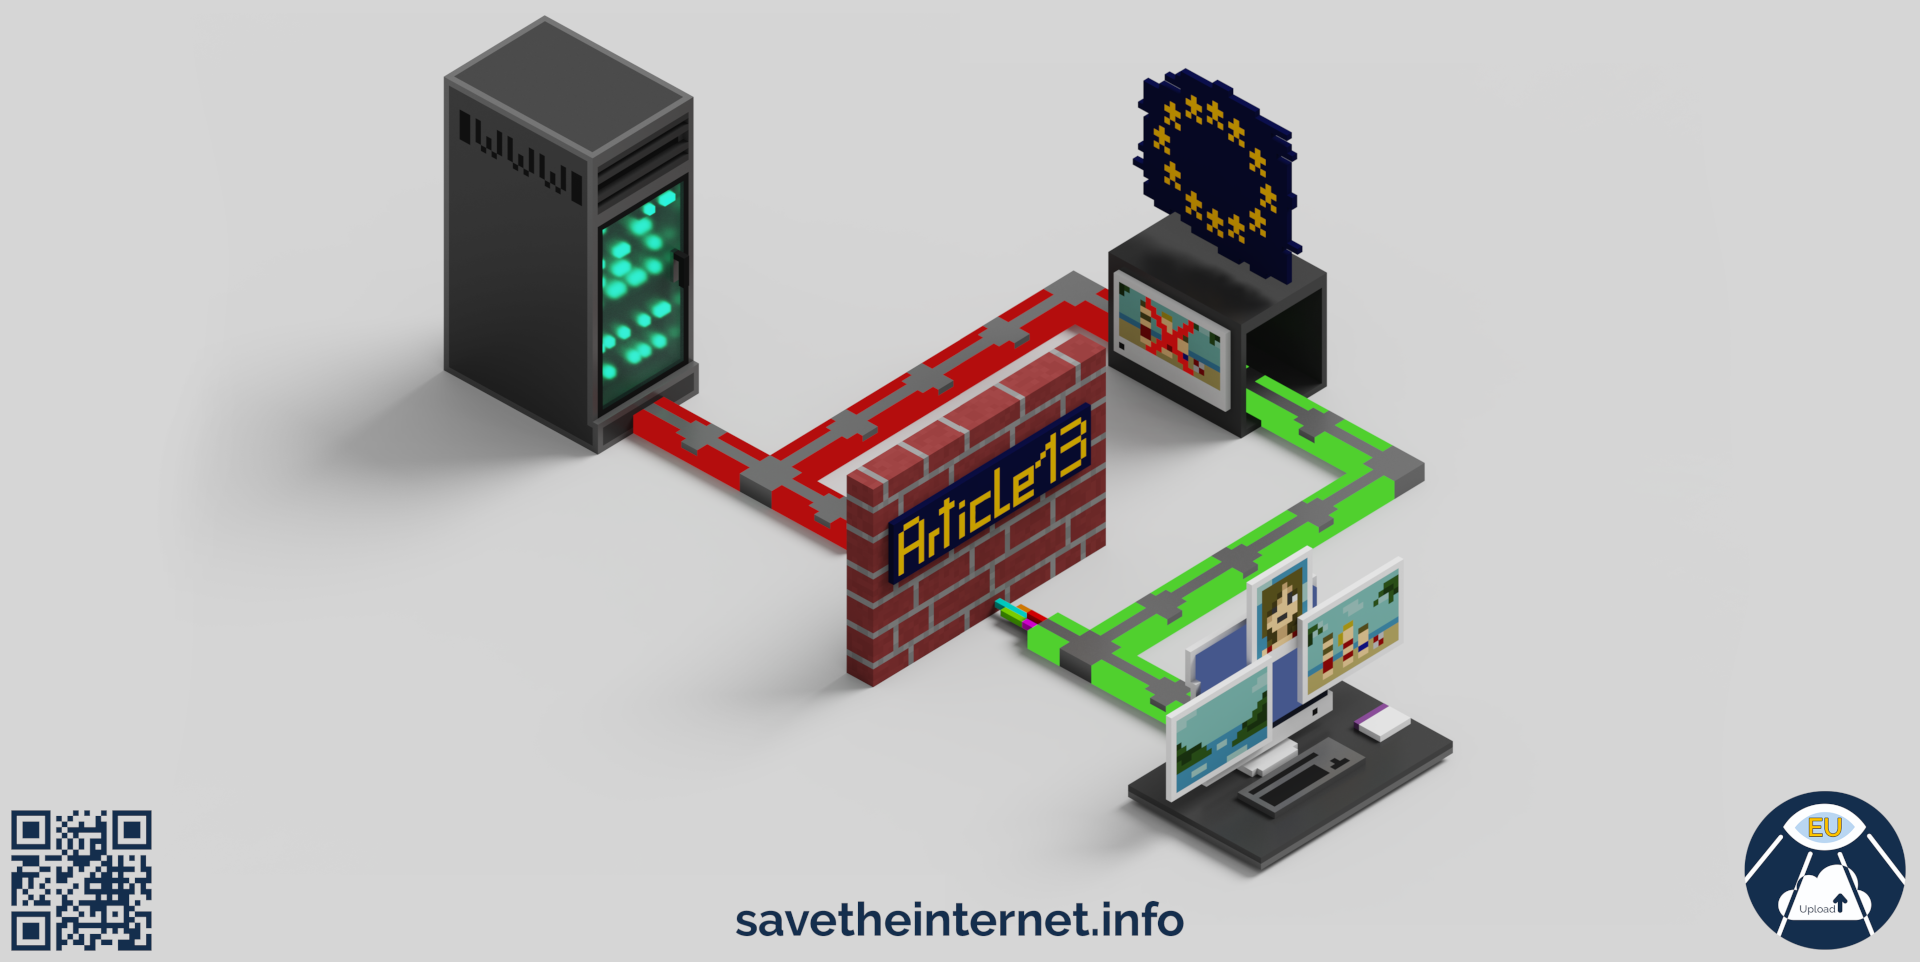 illustration with blocked servers because of article 13